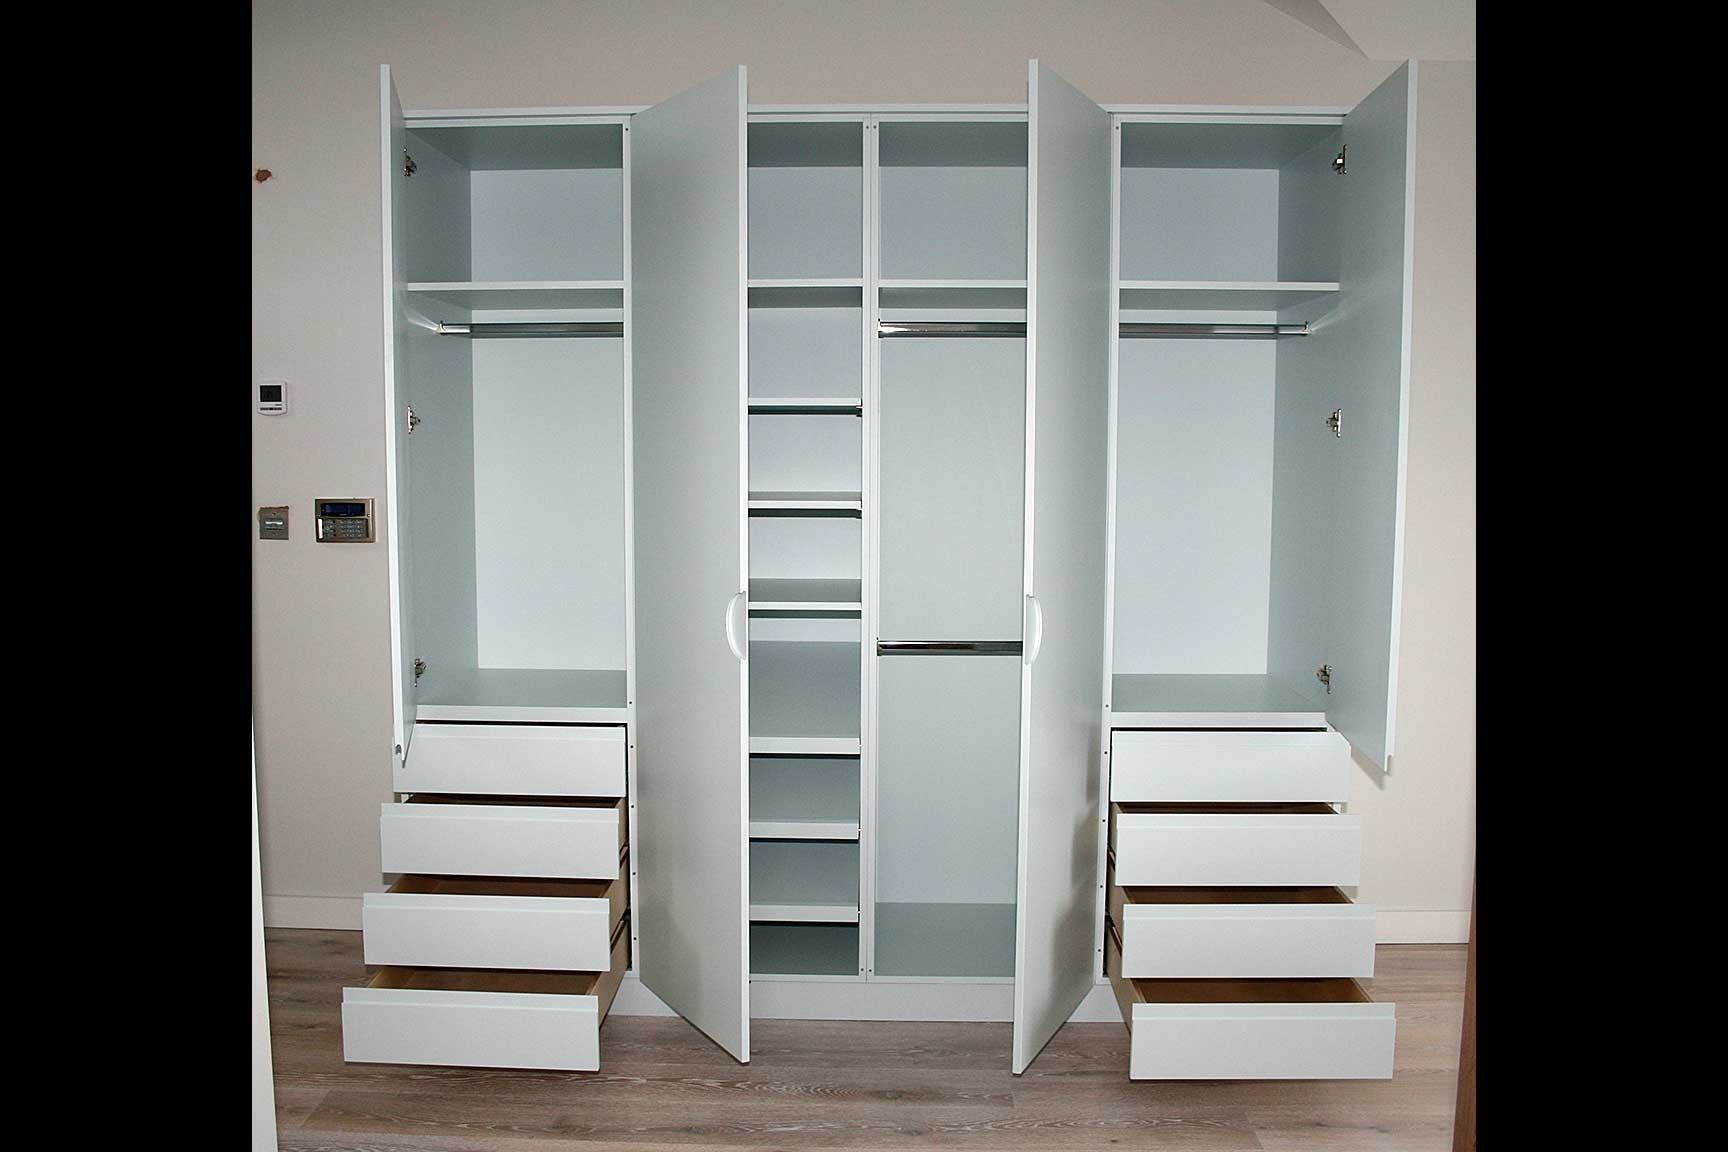 Well Known Wardrobe With Drawers And Shelves In Sensational Inspiration Ideas Wardrobe With Drawers And Shelves (View 15 of 15)